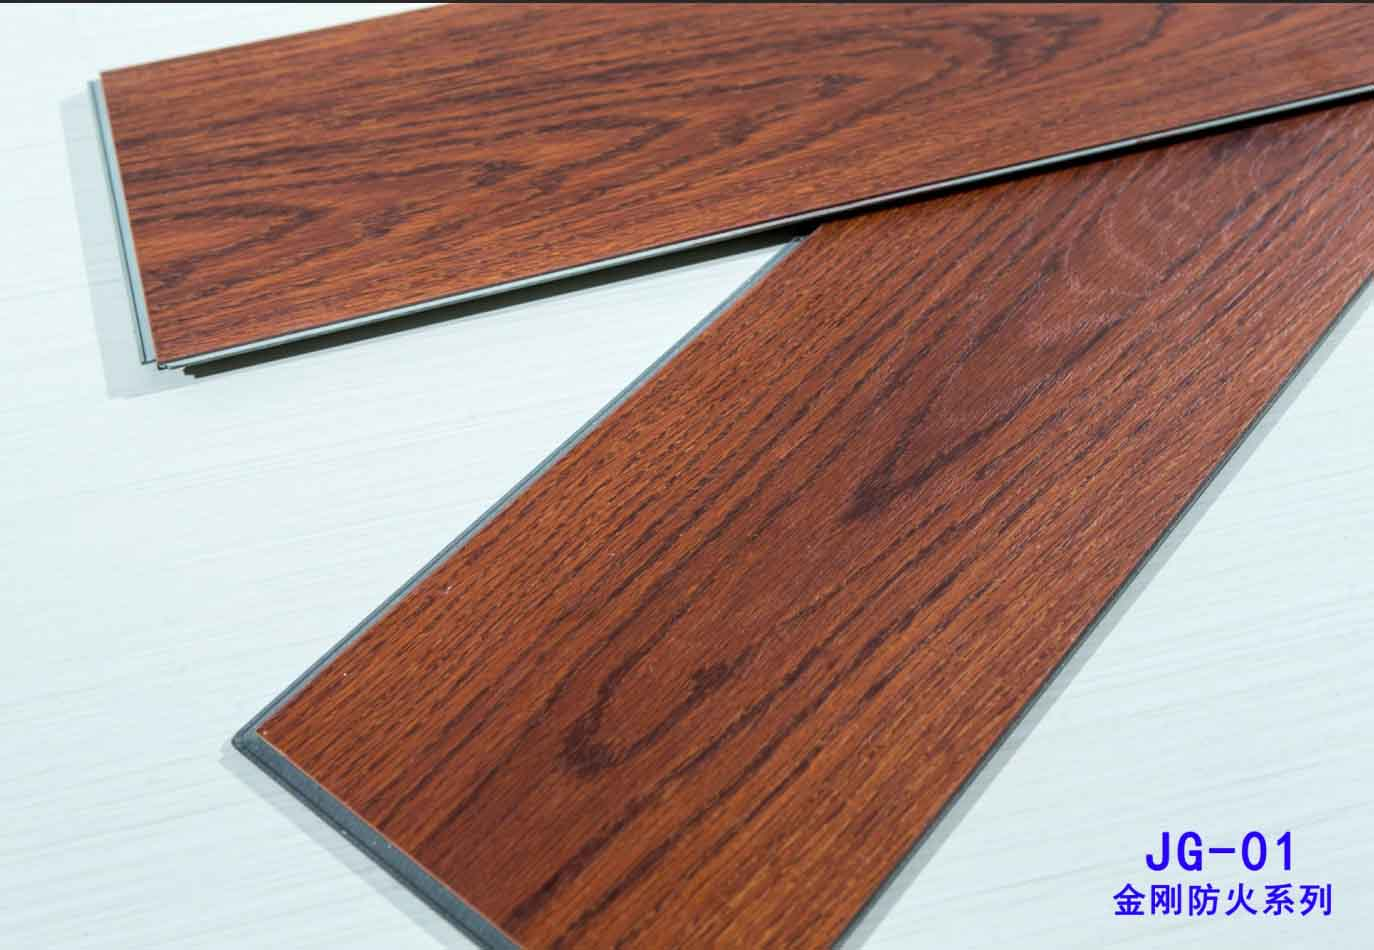 Wholesaler price supply vinyl plank 10mm SPC fireproof click flooring